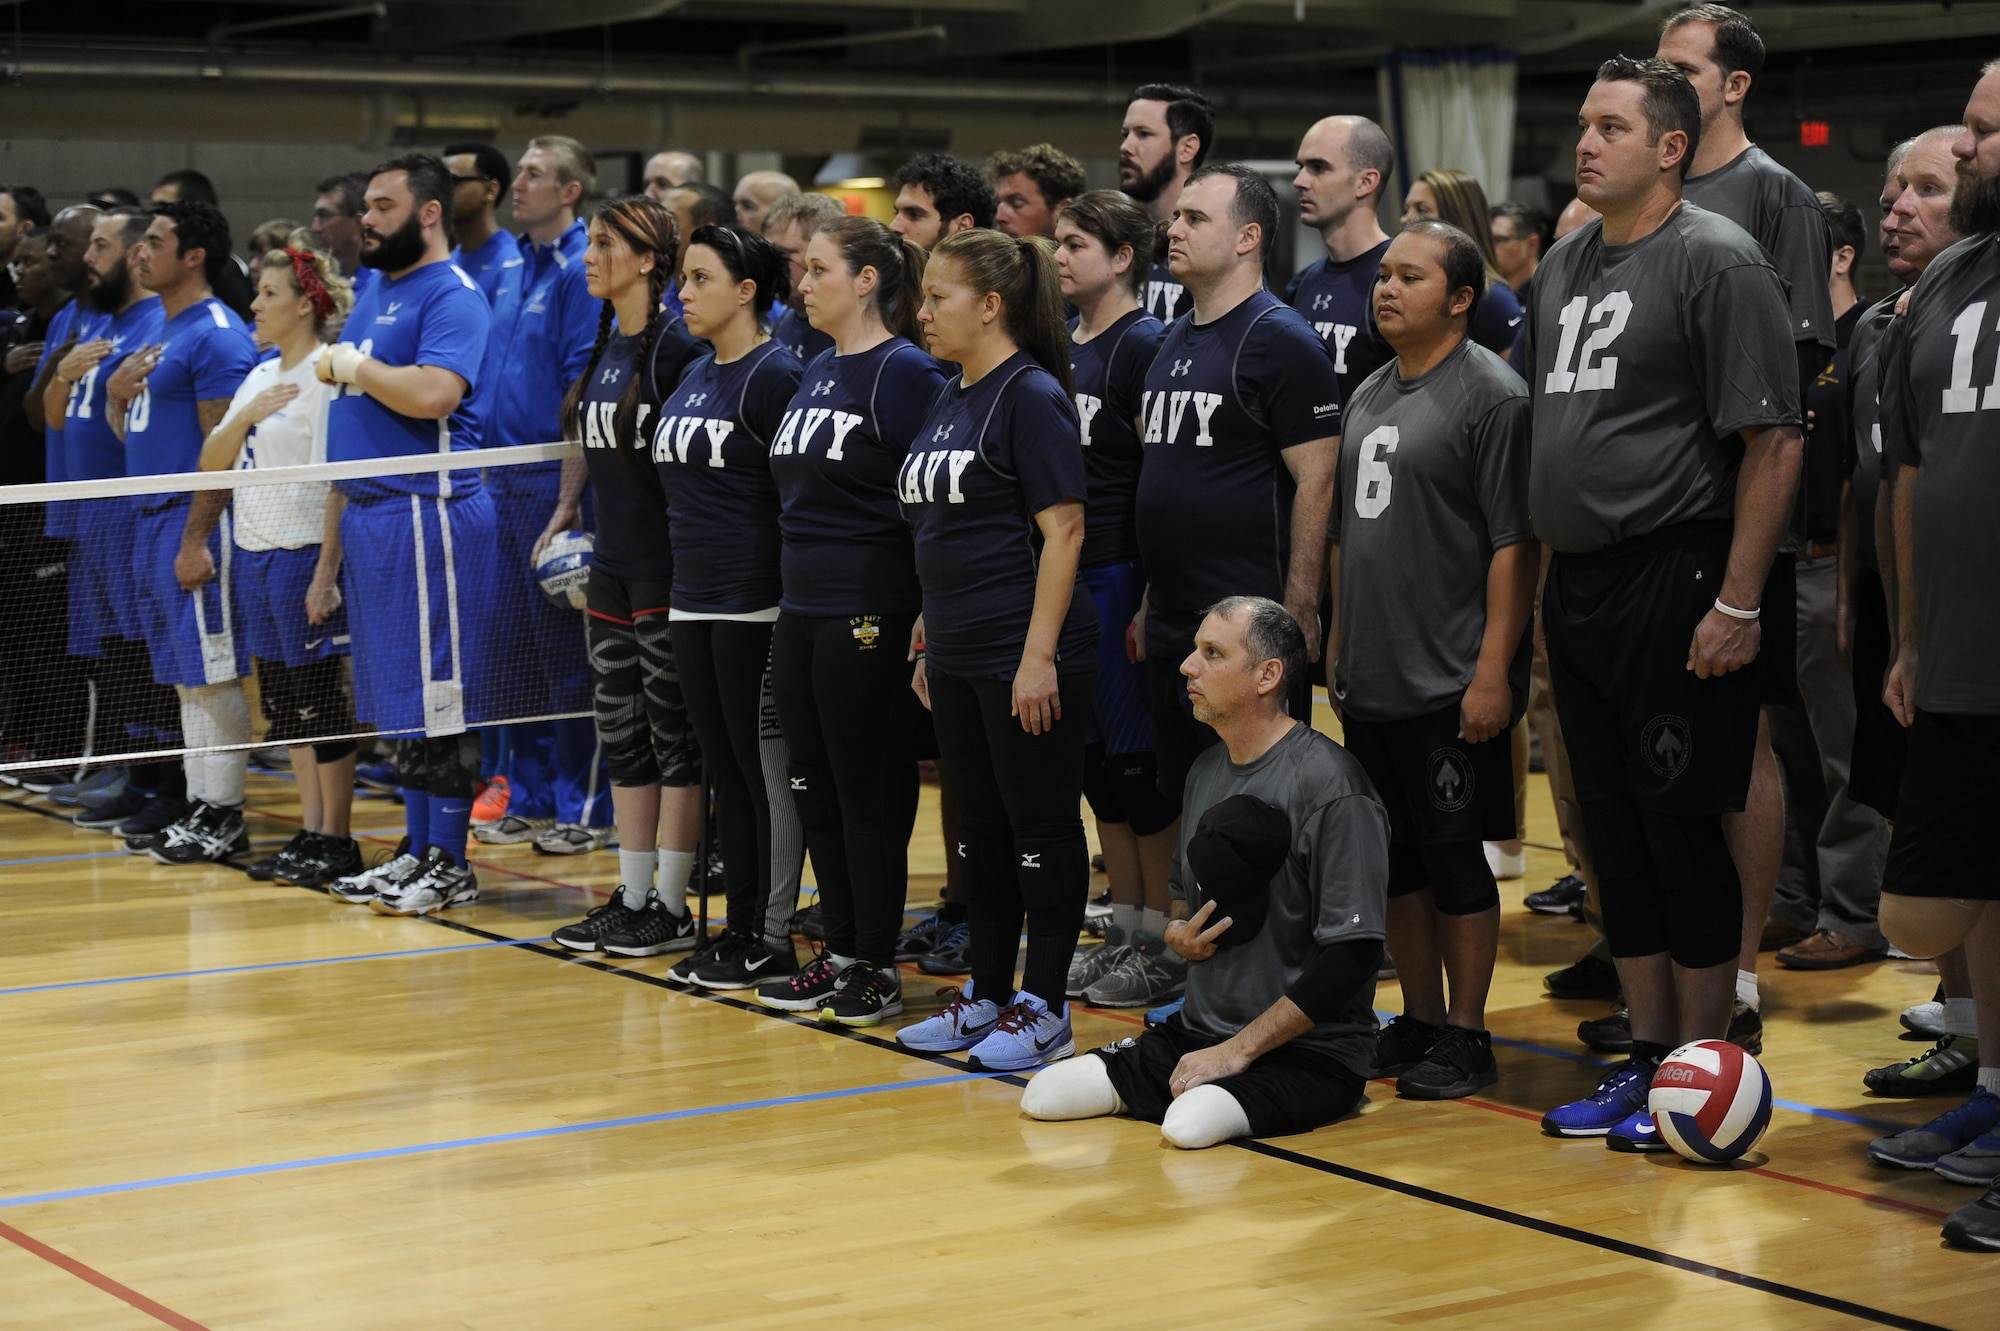 Wounded warrior athletes from the Army, Air Force, Navy and Marines prepare for the joint-service Warrior CARE Month Sitting Volleyball Tournament at the Pentagon Nov. 17, 2016. The warrior CARE event offers participants caregiver support and recovering Airmen mentorship, training and adaptive and rehabilitative sports training. CARE stands for Caregiver Support Program, Adaptive and Rehabilitative Sports Program, Recovering Airmen Mentorship Program, and Employment and Career Readiness Program. (U.S. Air Force photo/Tech. Sgt. Robert Barnett)